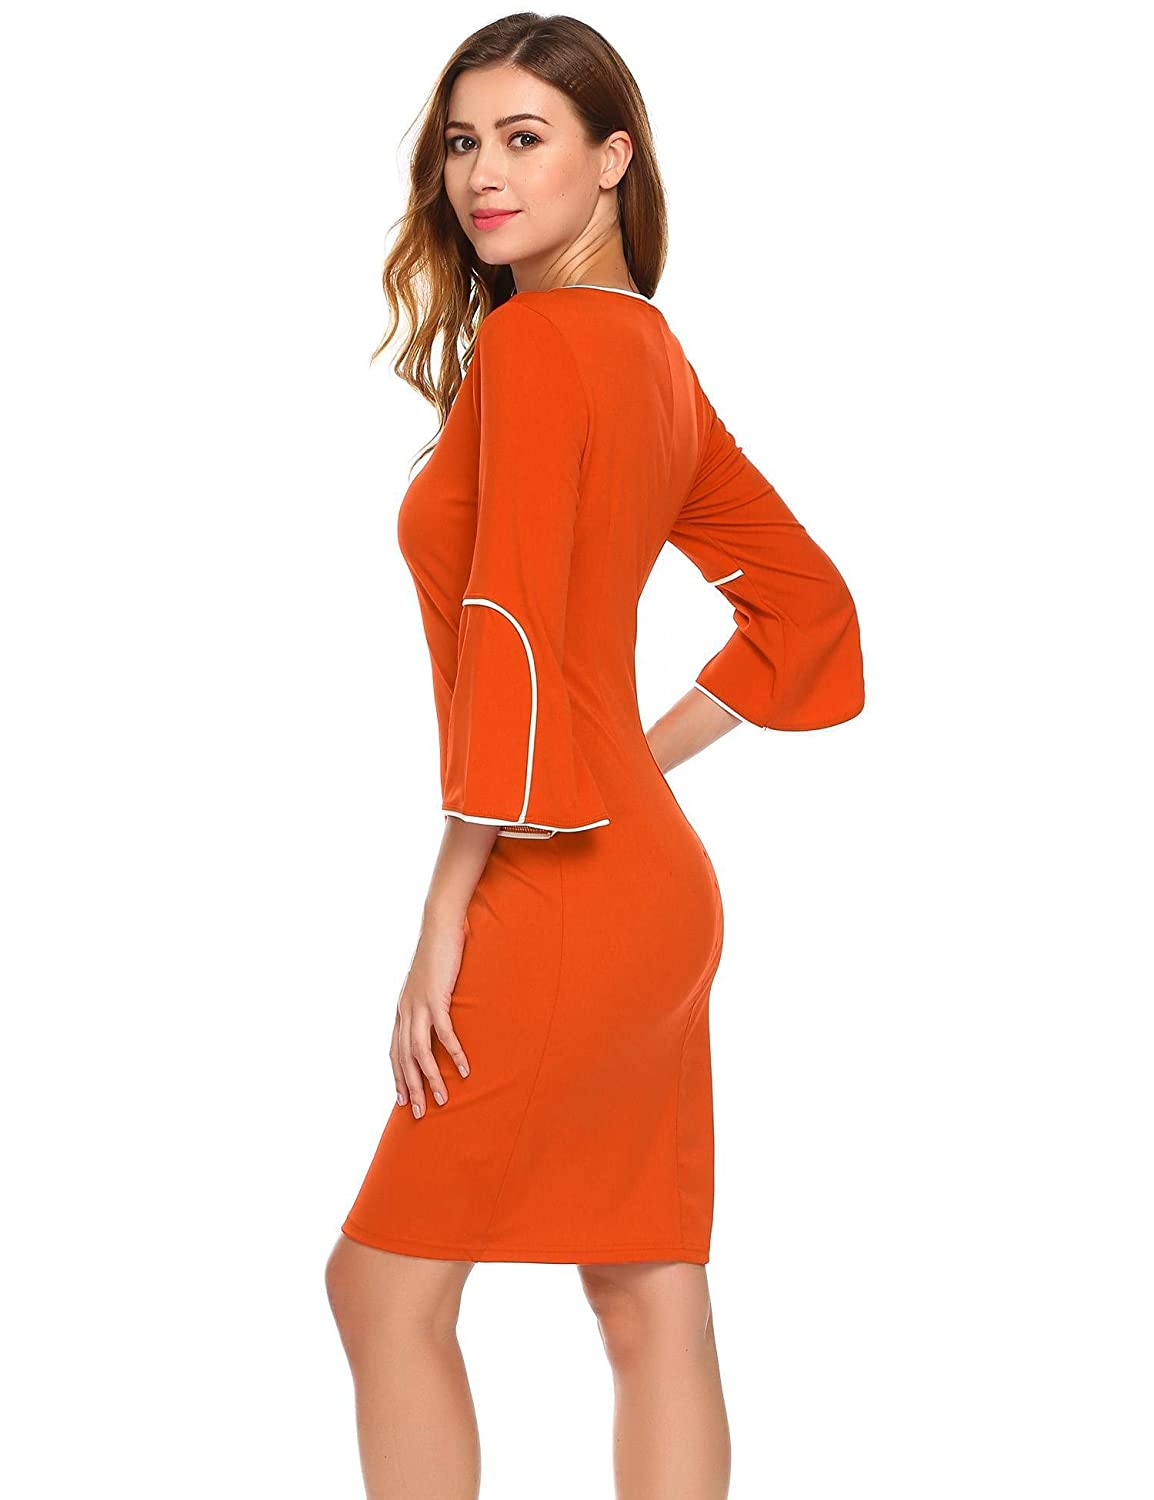 Nessere Women V Neck 3 4 Flare Sleeve Patchwork Bodycon Cocktail Party Dress  at Amazon Women s Clothing store  0c15ff865